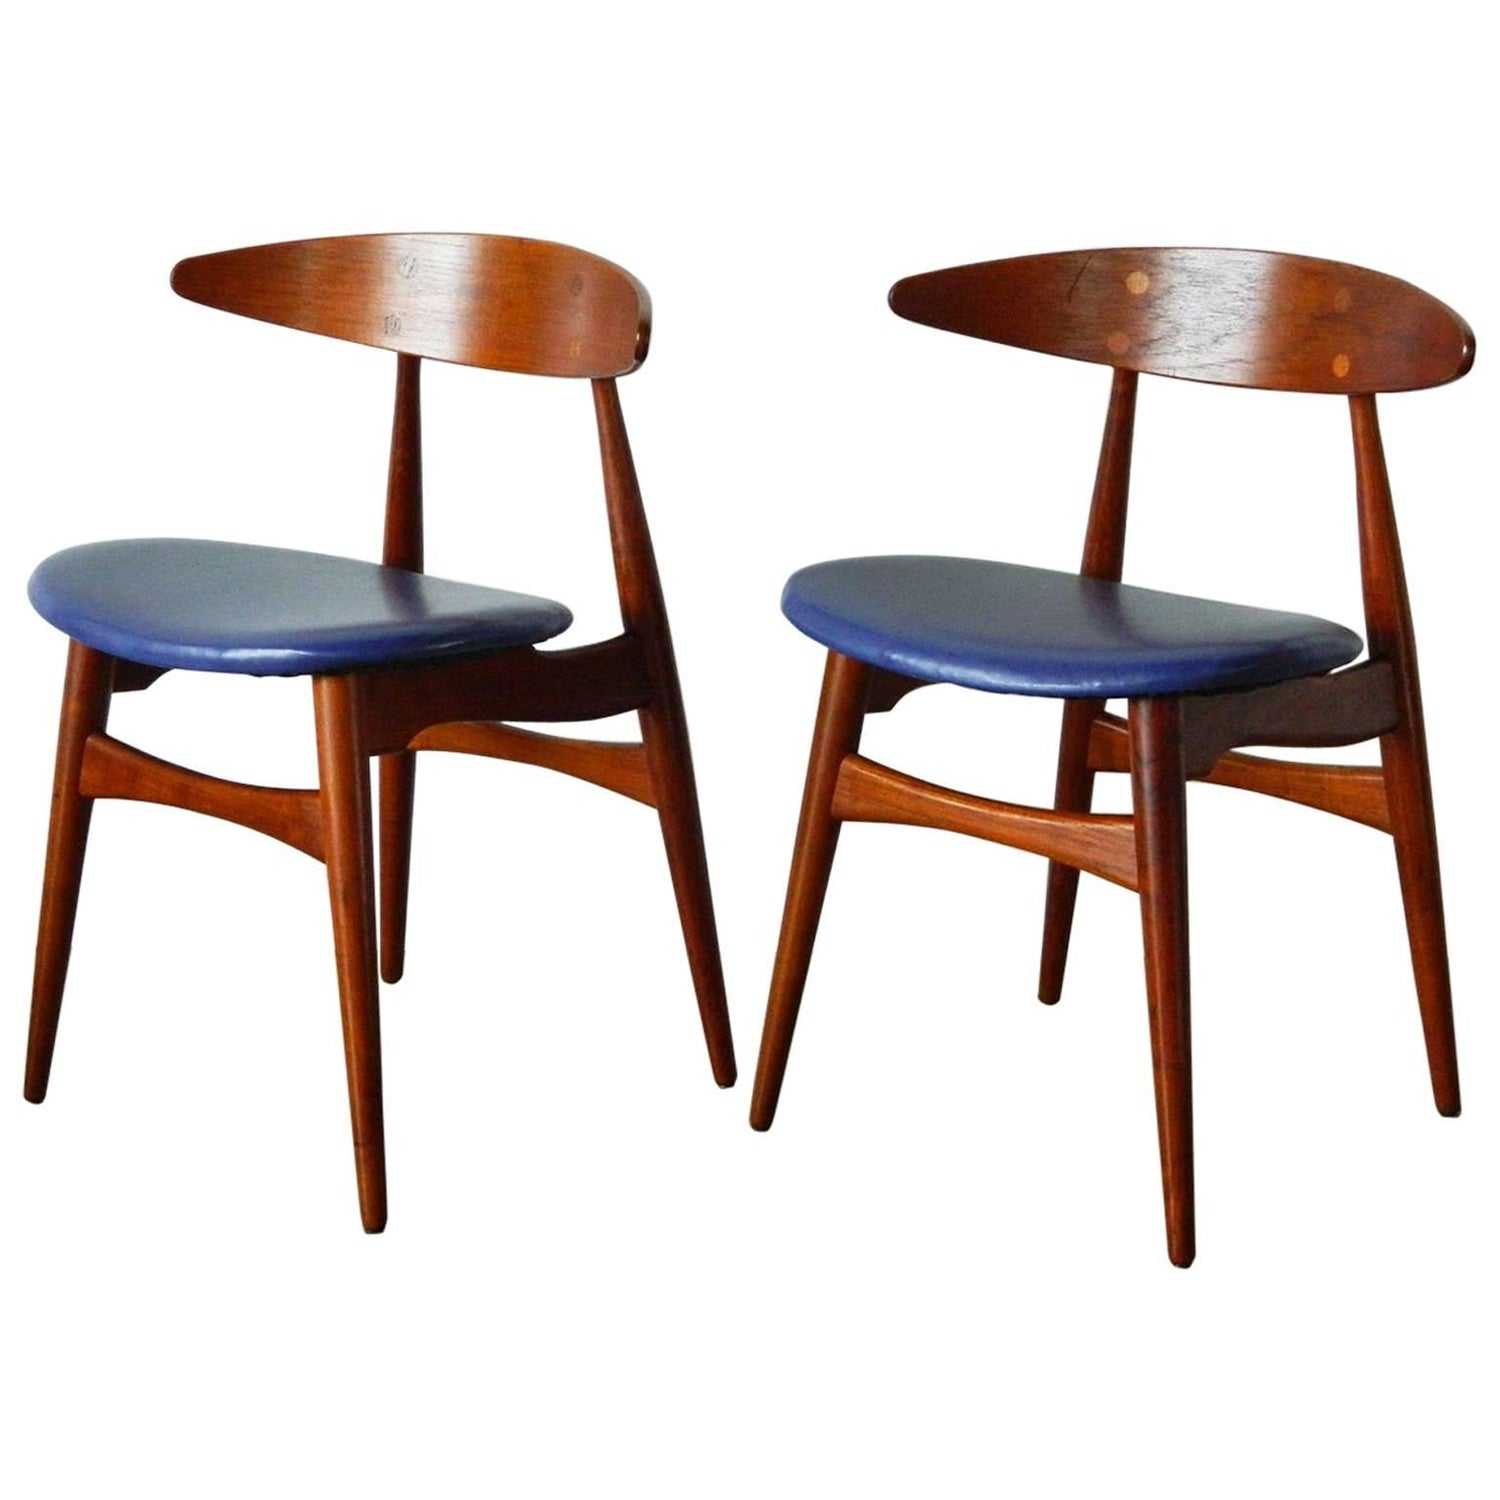 Hans J Wegner Chairs 122 For Sale at 1stdibs